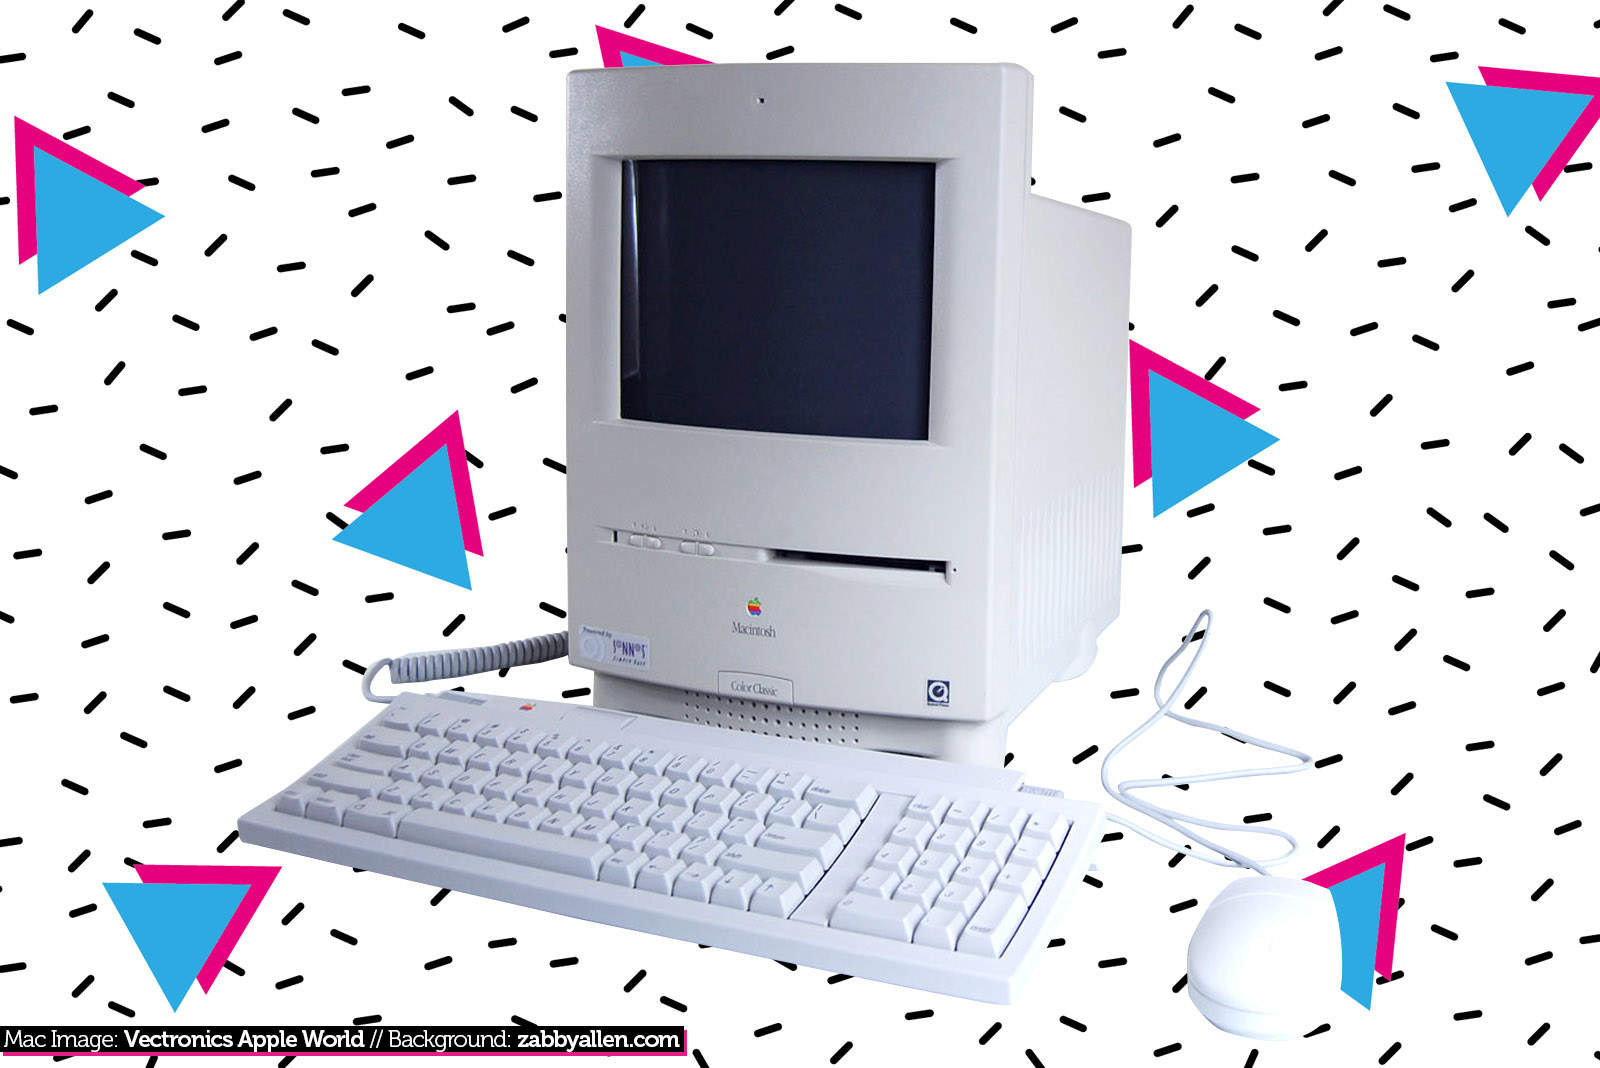 The Macintosh Color Classic II never shipped in the U.S., which makes it hard to find today.